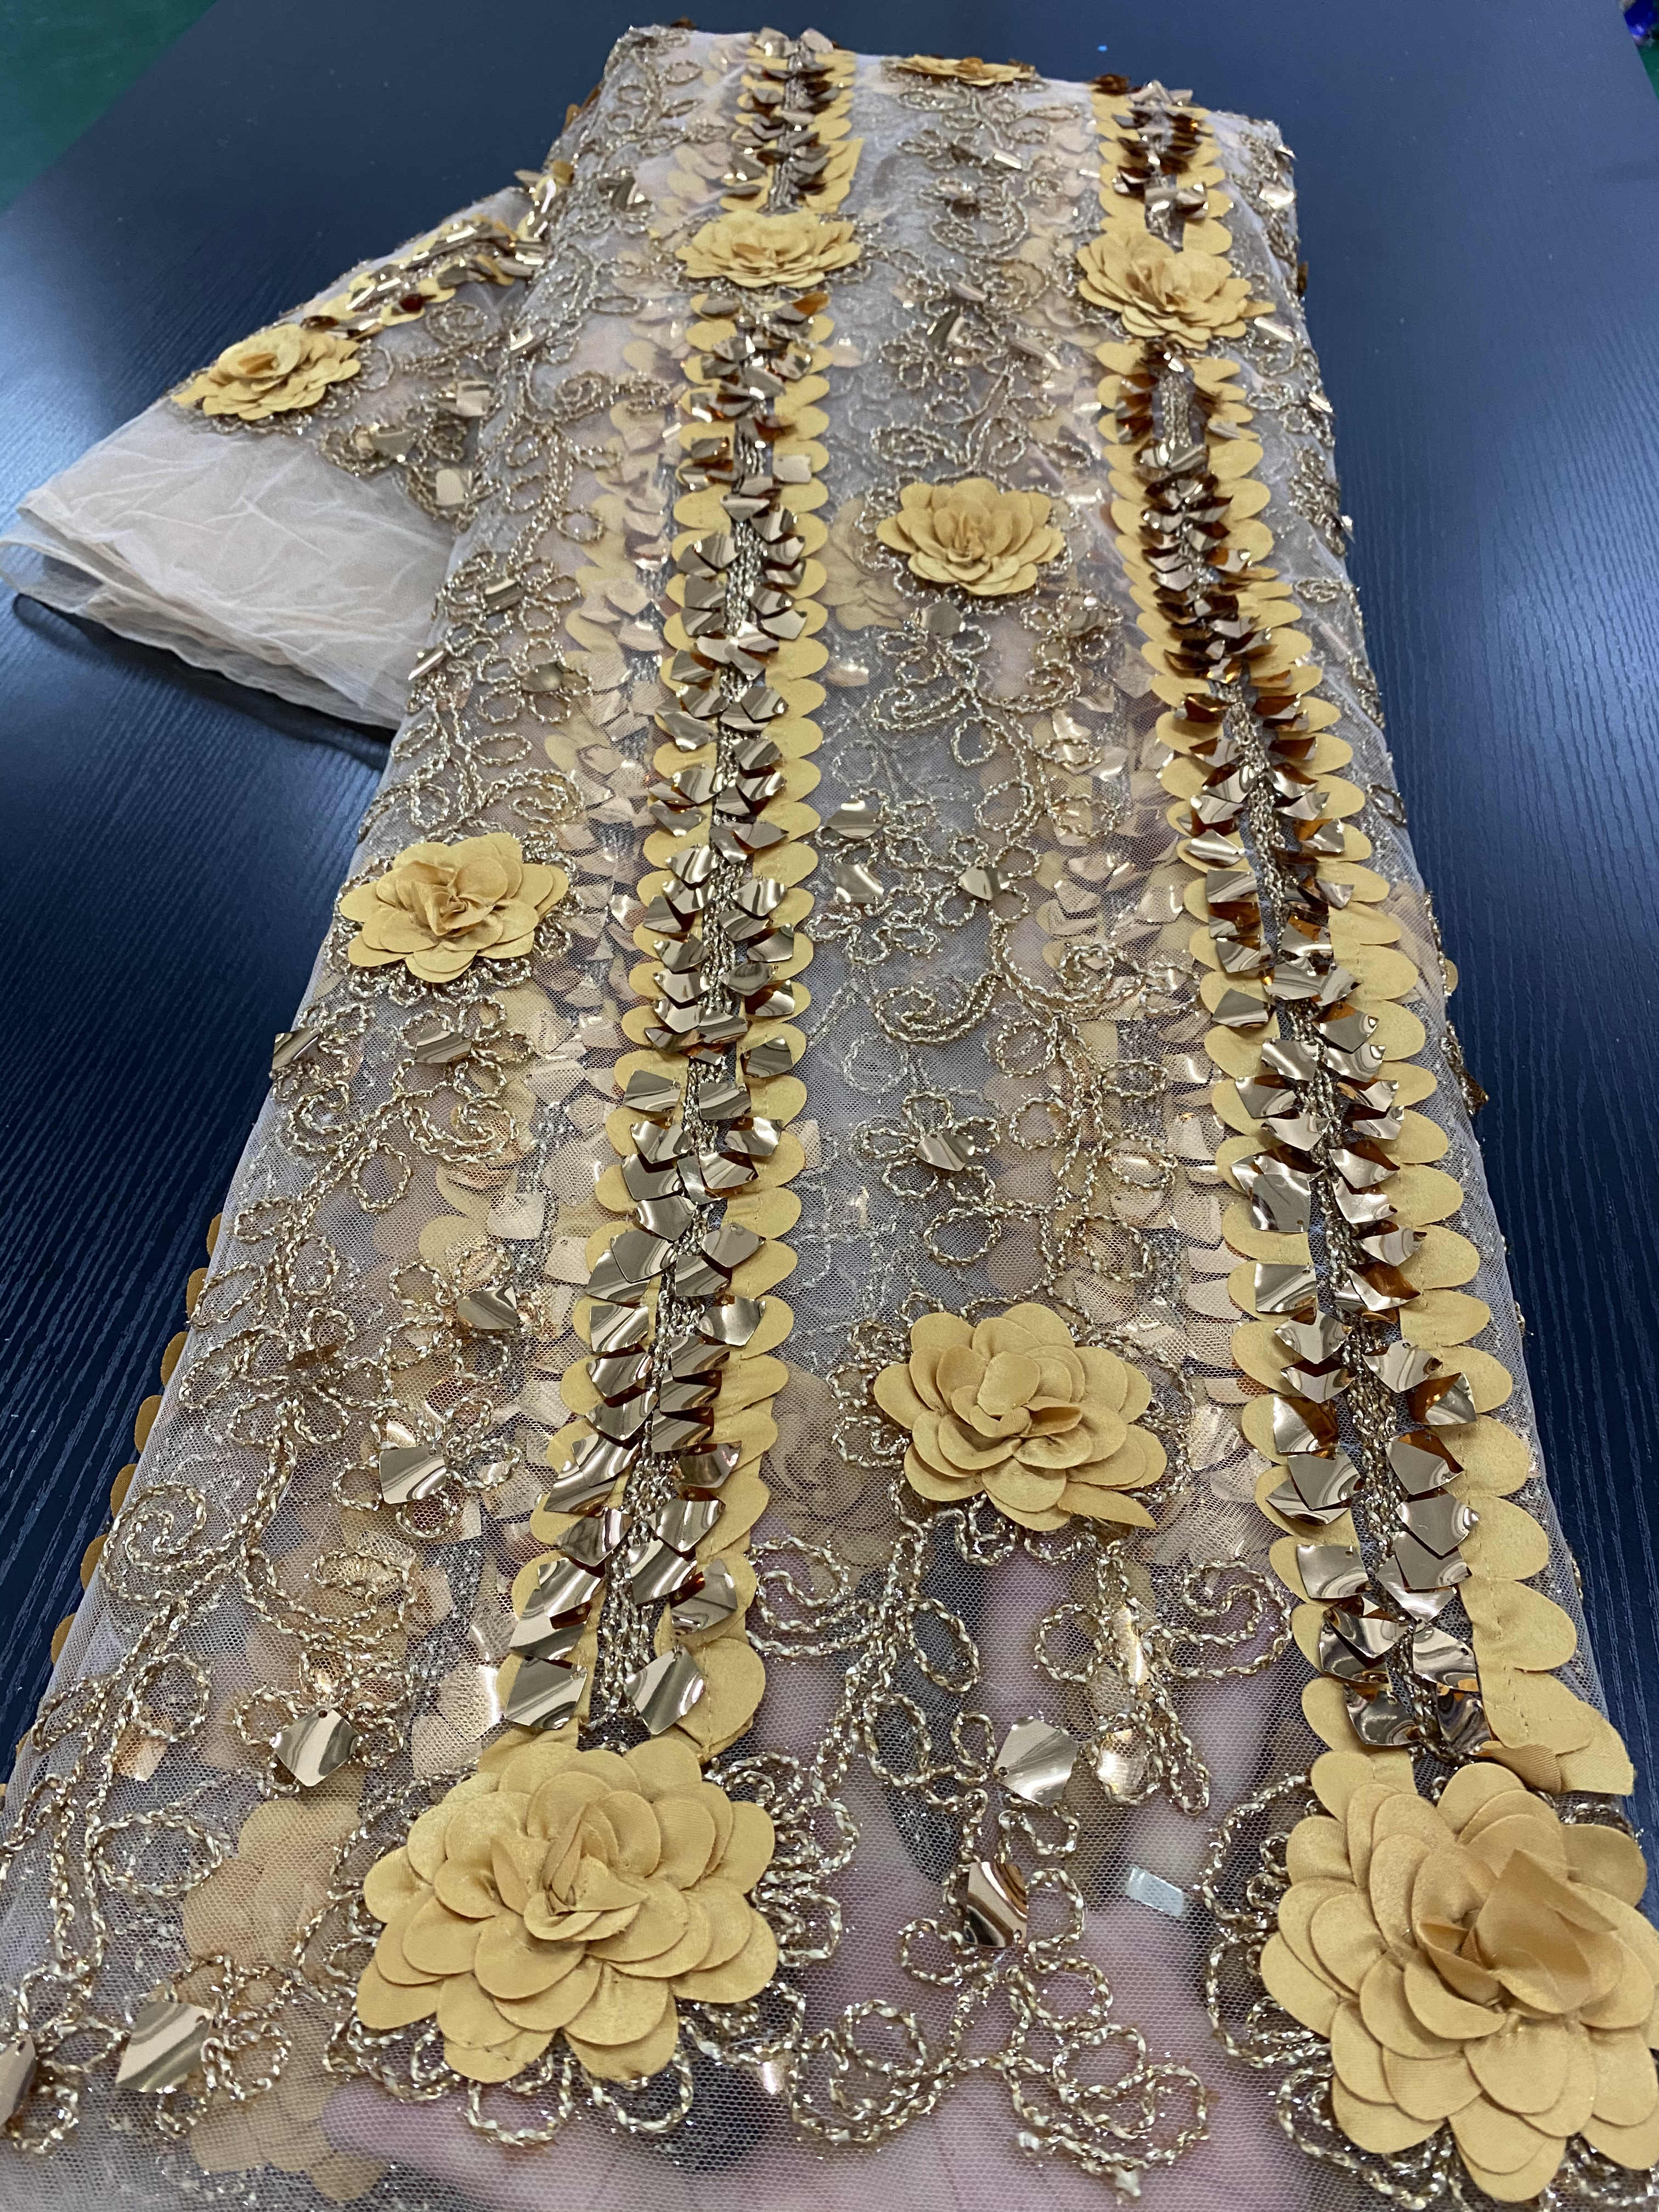 African Lace Fabric 5Yards French Lace Fabric 2020 High Quality Lace Nigerian Sequins Lace Fabrics For Wedding Sewing YA2631B nigerian sequins lace fabrics 2020 high quality lace african lace fabric wedding french tulle lace material sewing ya3712b 6